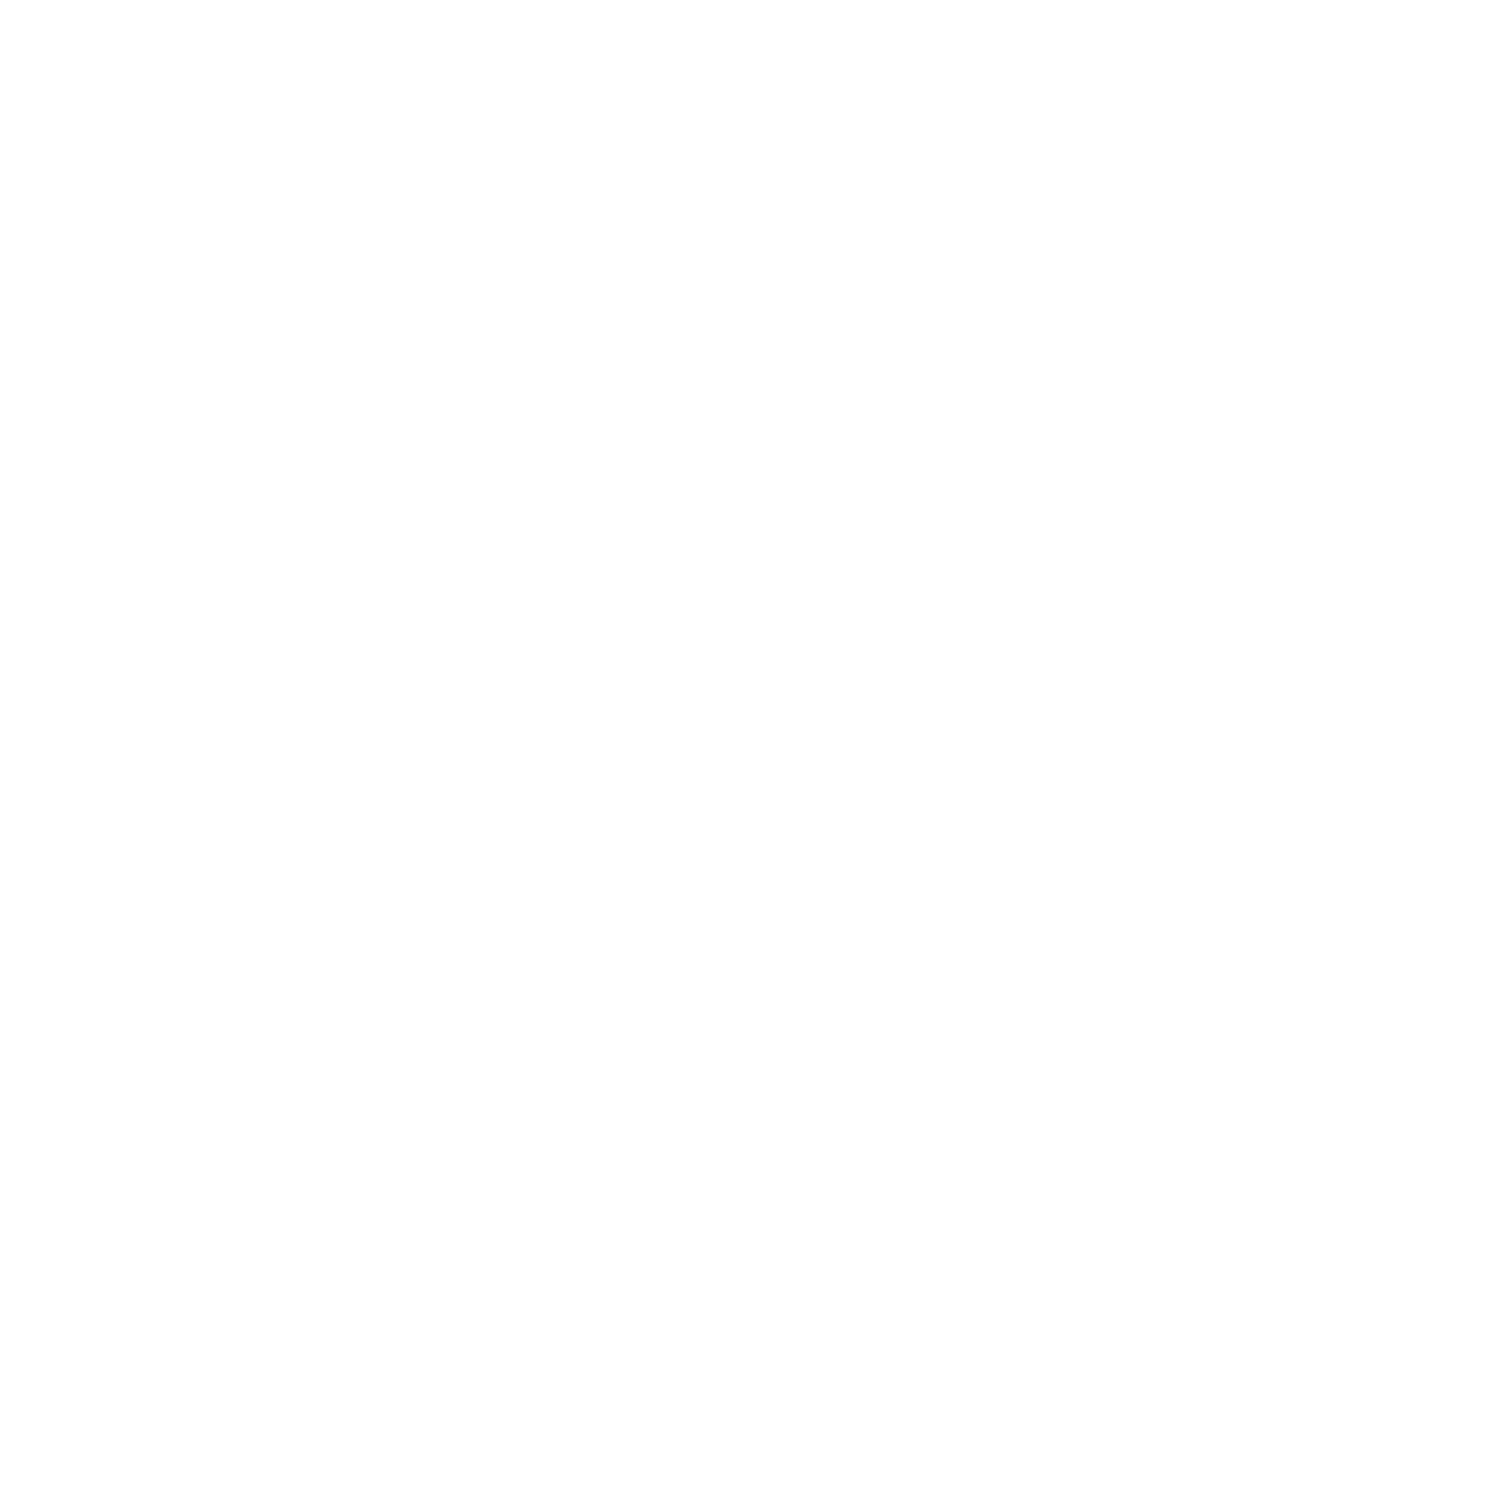 Philadelphia Gospel Movement